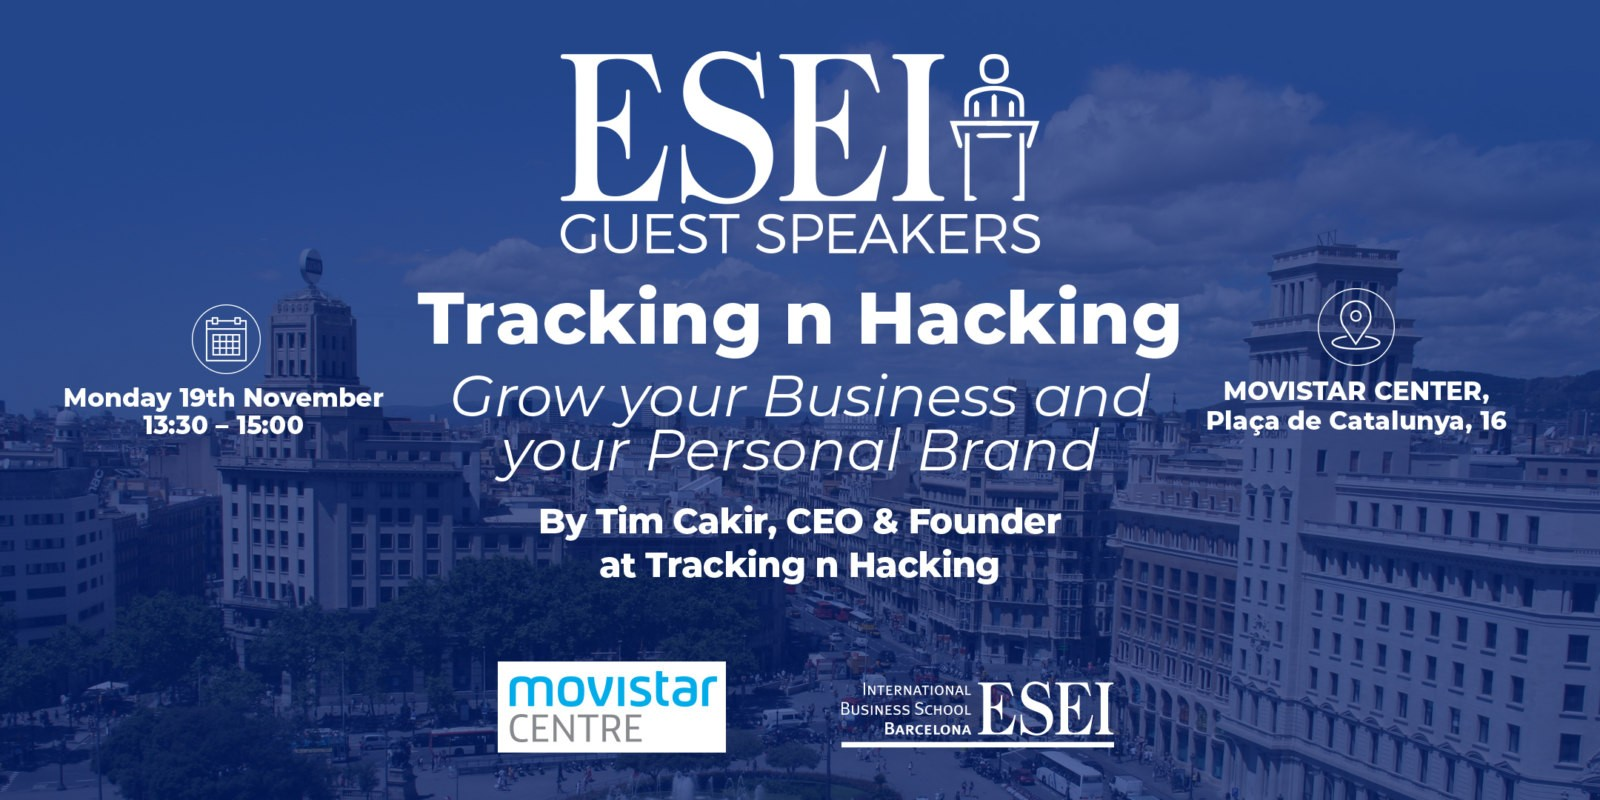 Guest Speaker Session: Tim Cakir talks growth, tracking and hacking